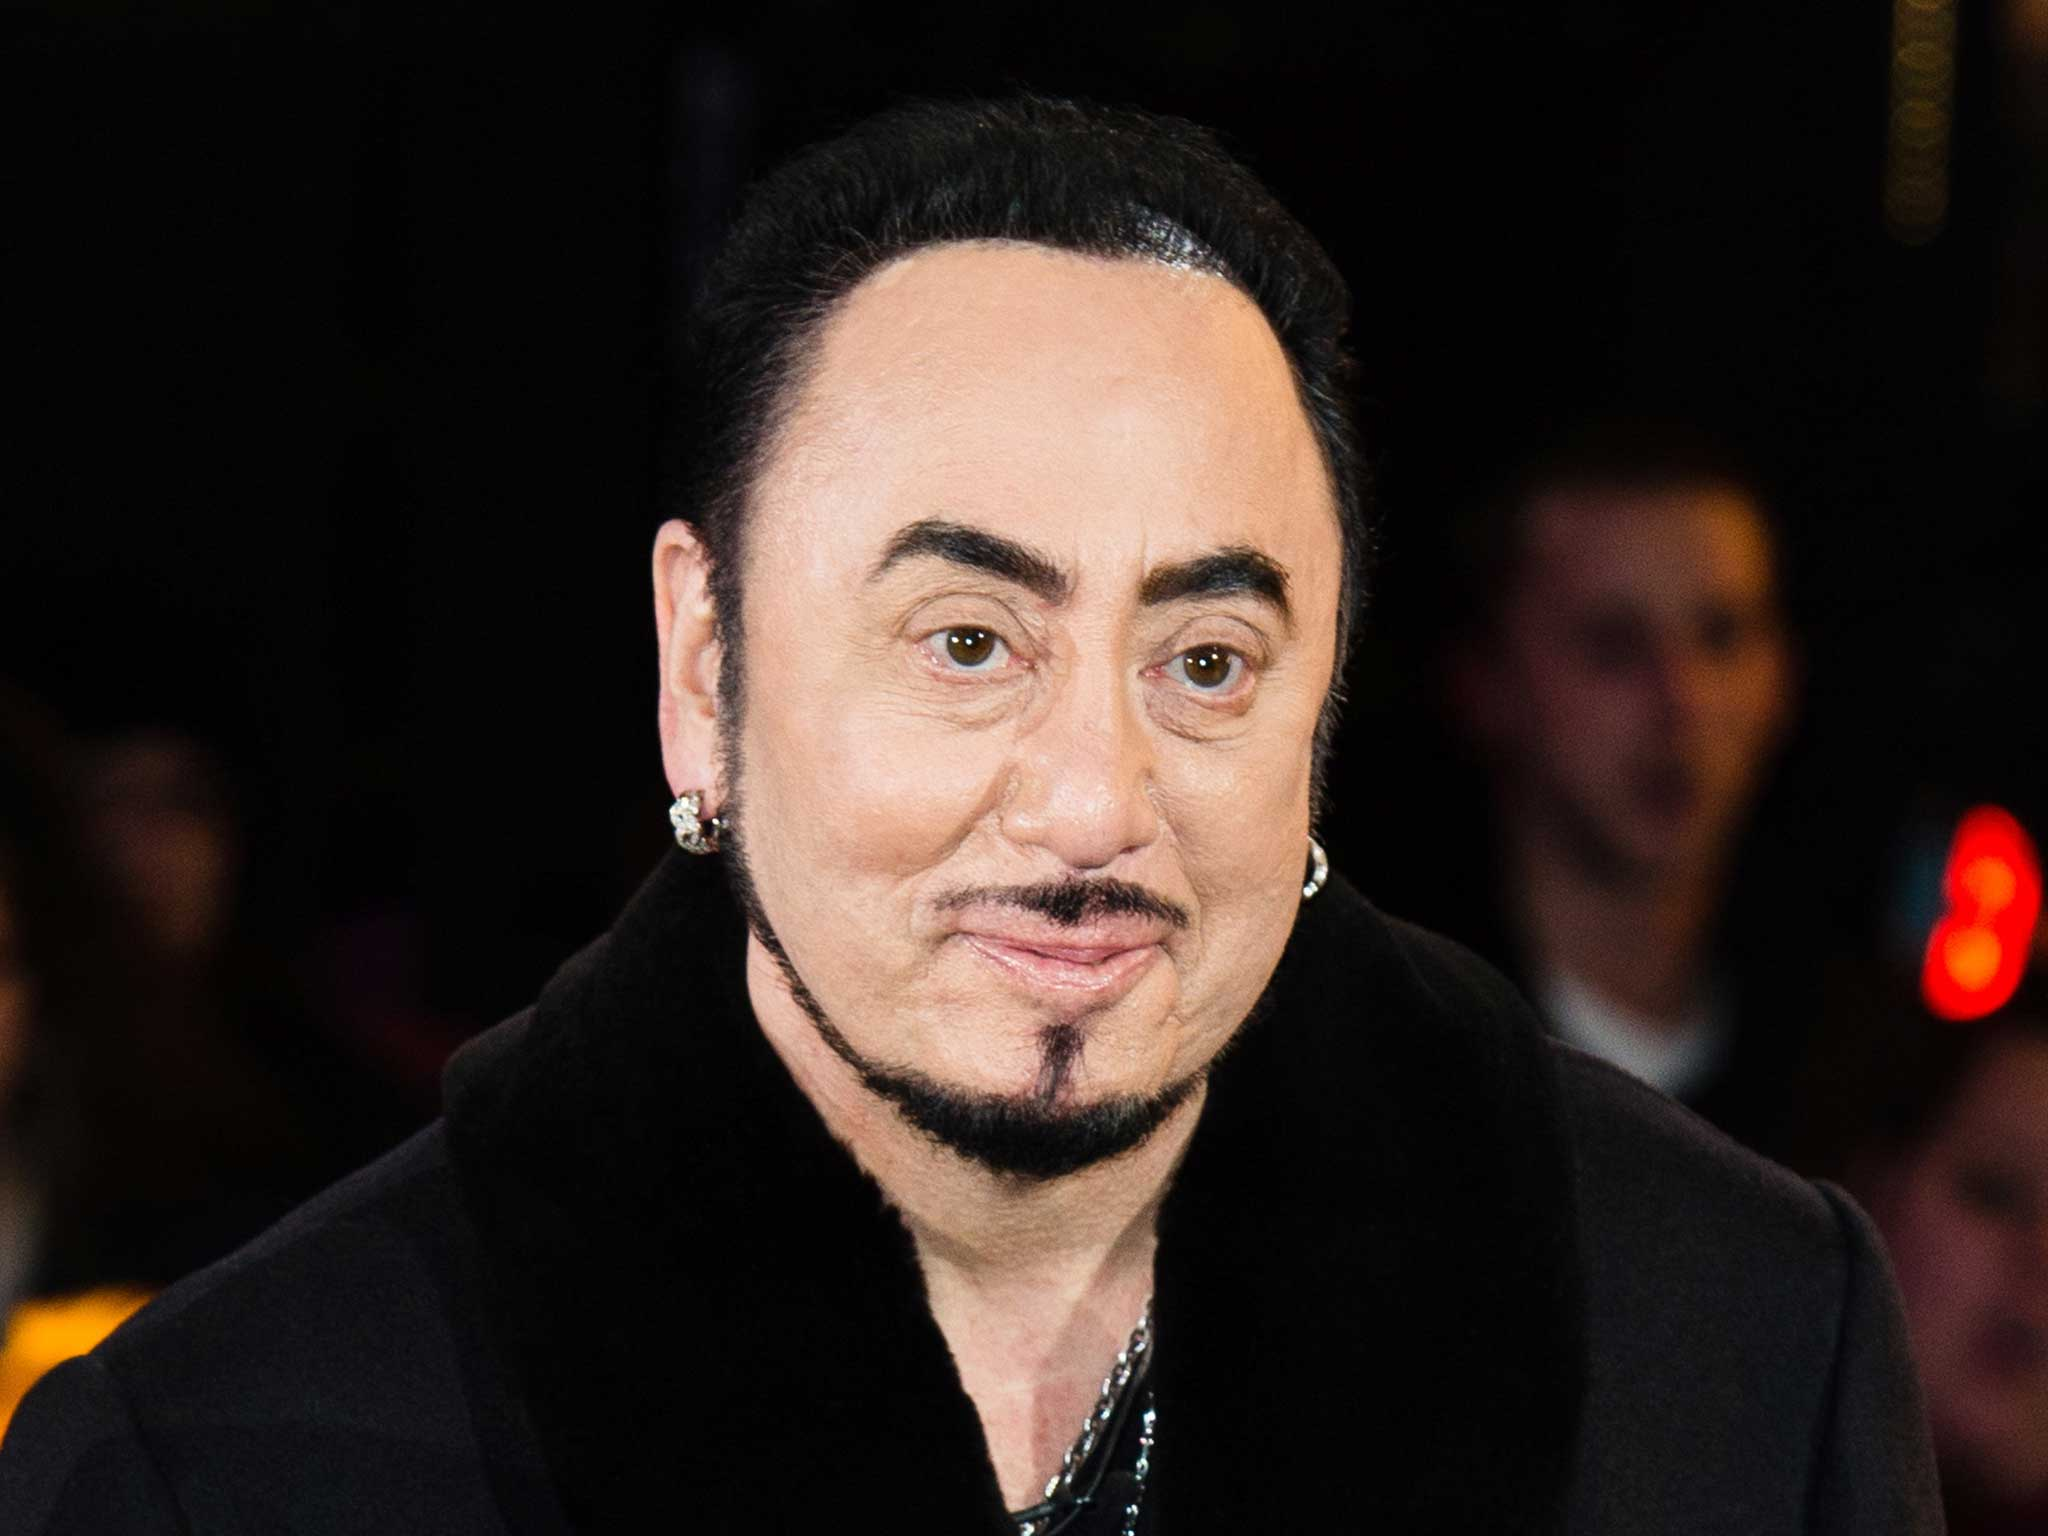 David Gest Dead Producer And Former Husband Of Liza Minnelli Dies At 62 The Independent The Independent